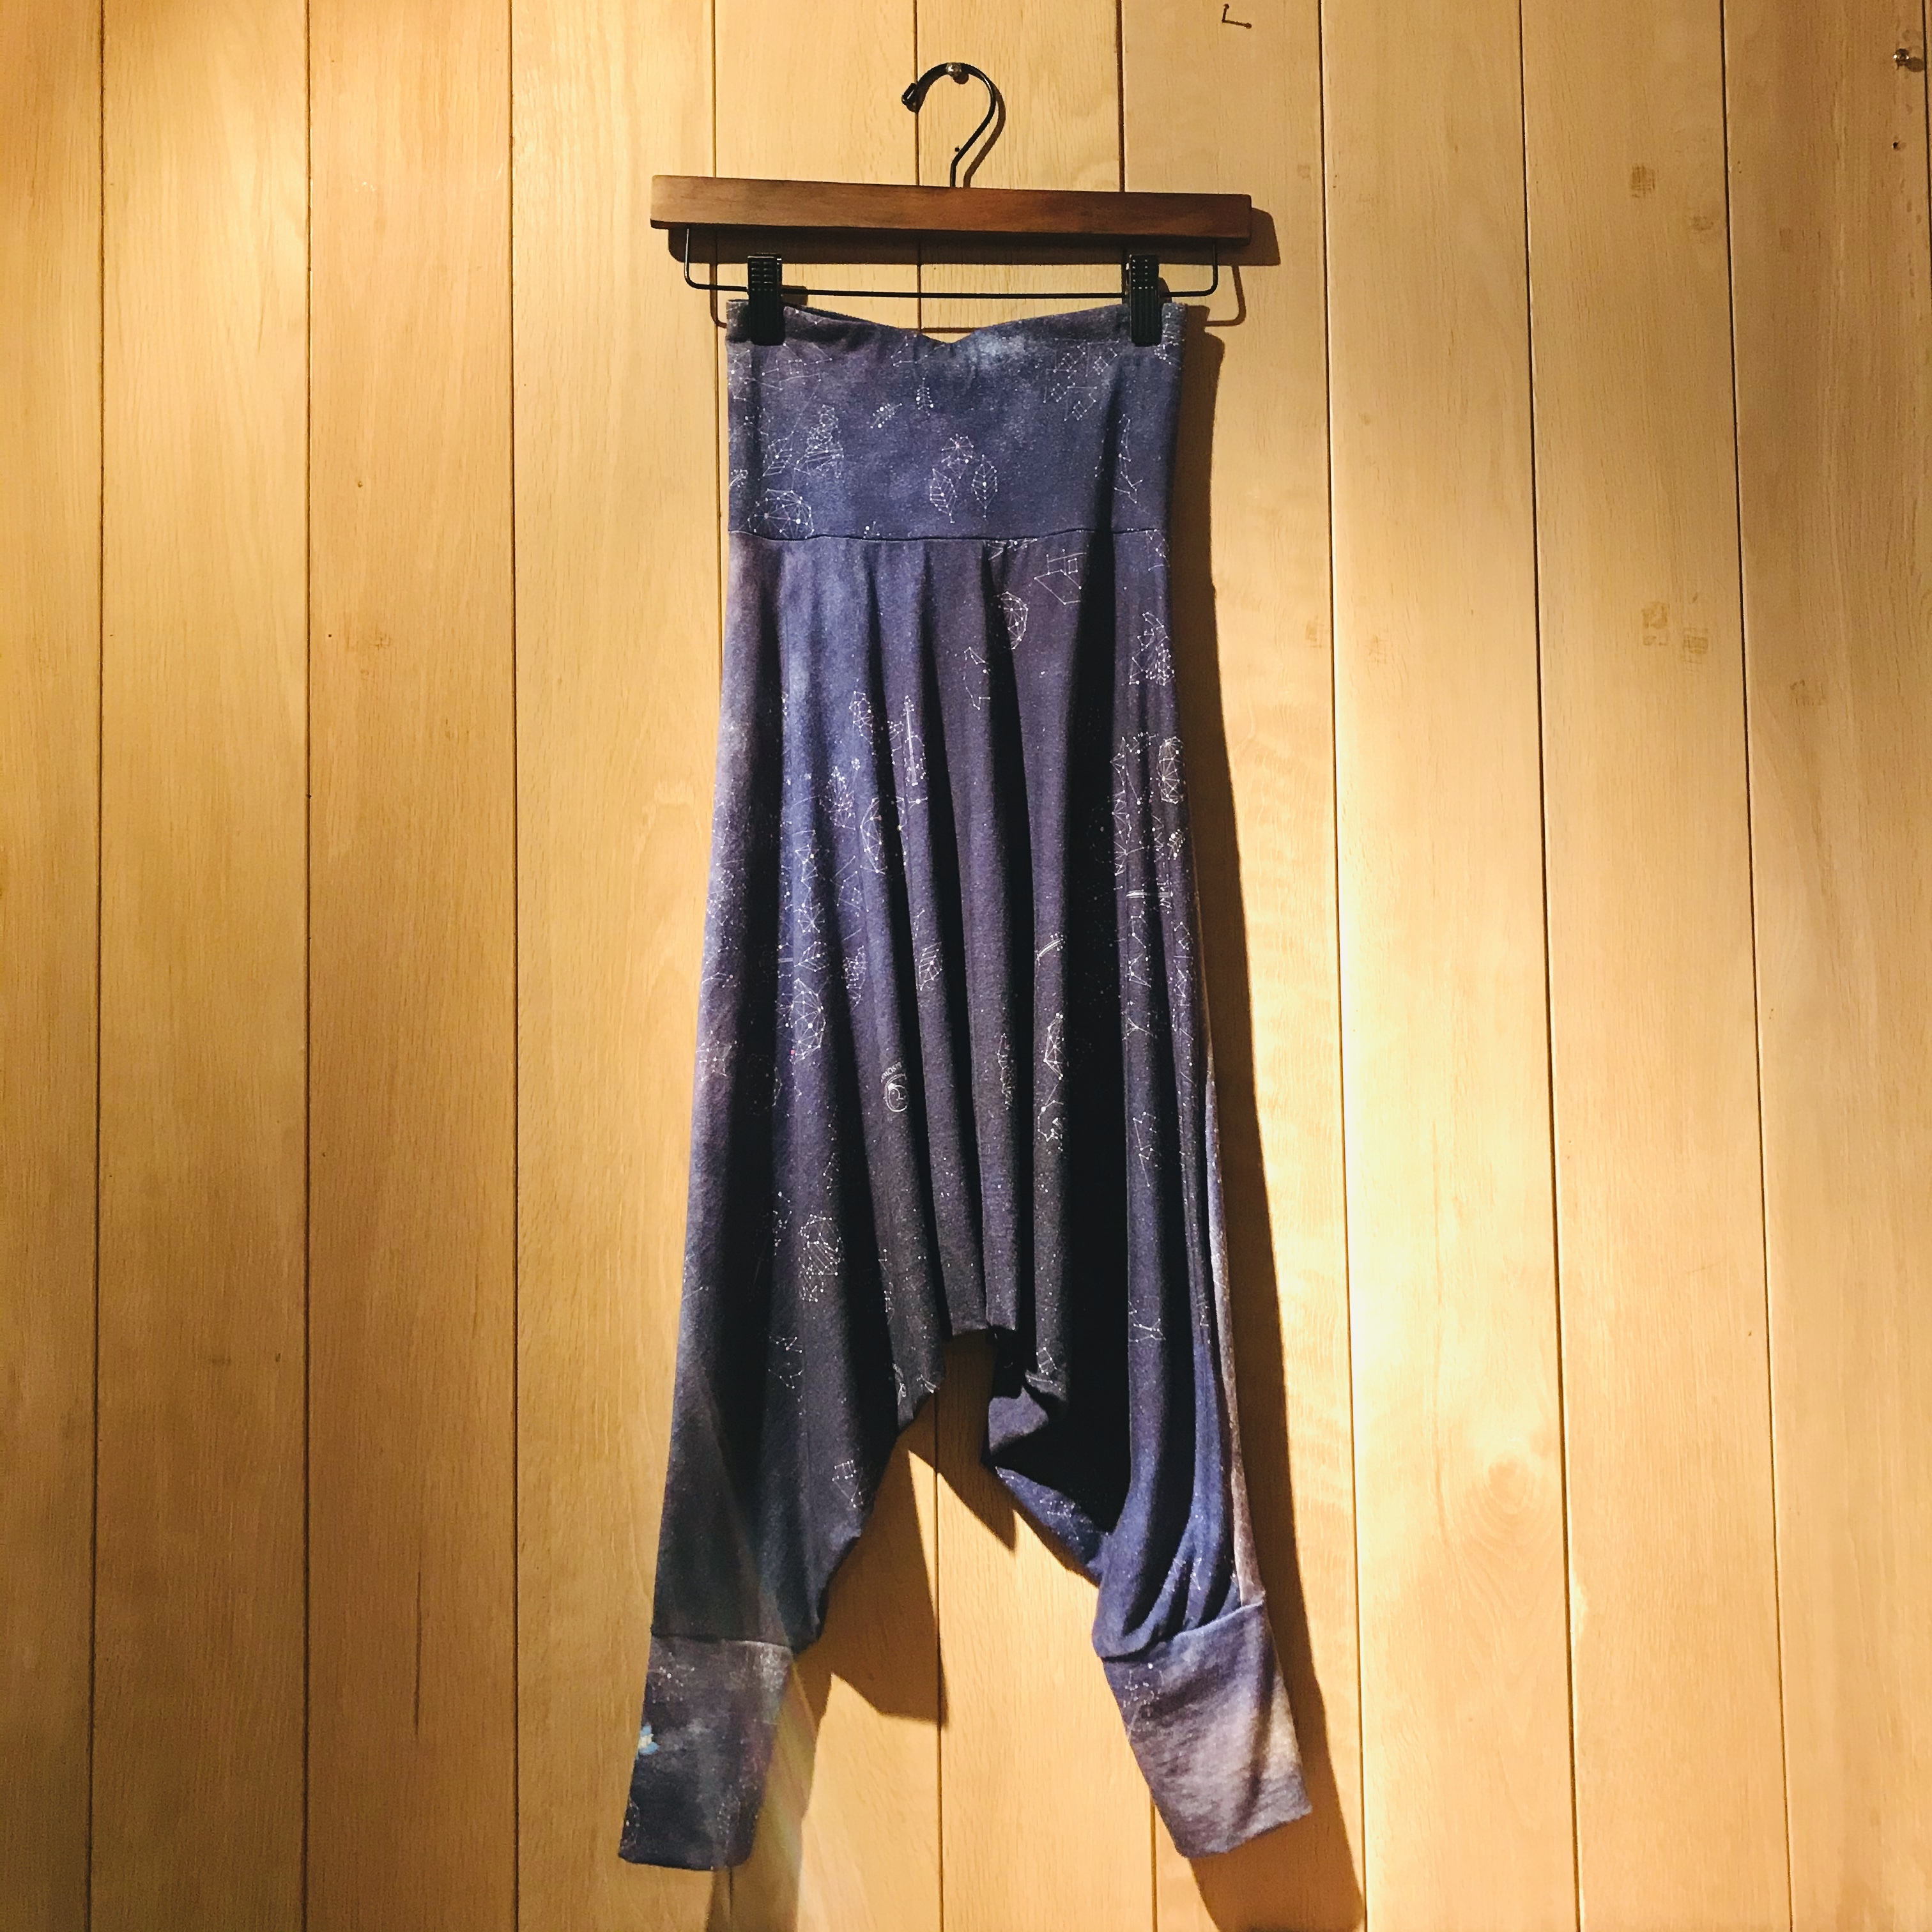 BISOWA PANTS【SPACE NAVY】(Kids Size/130)